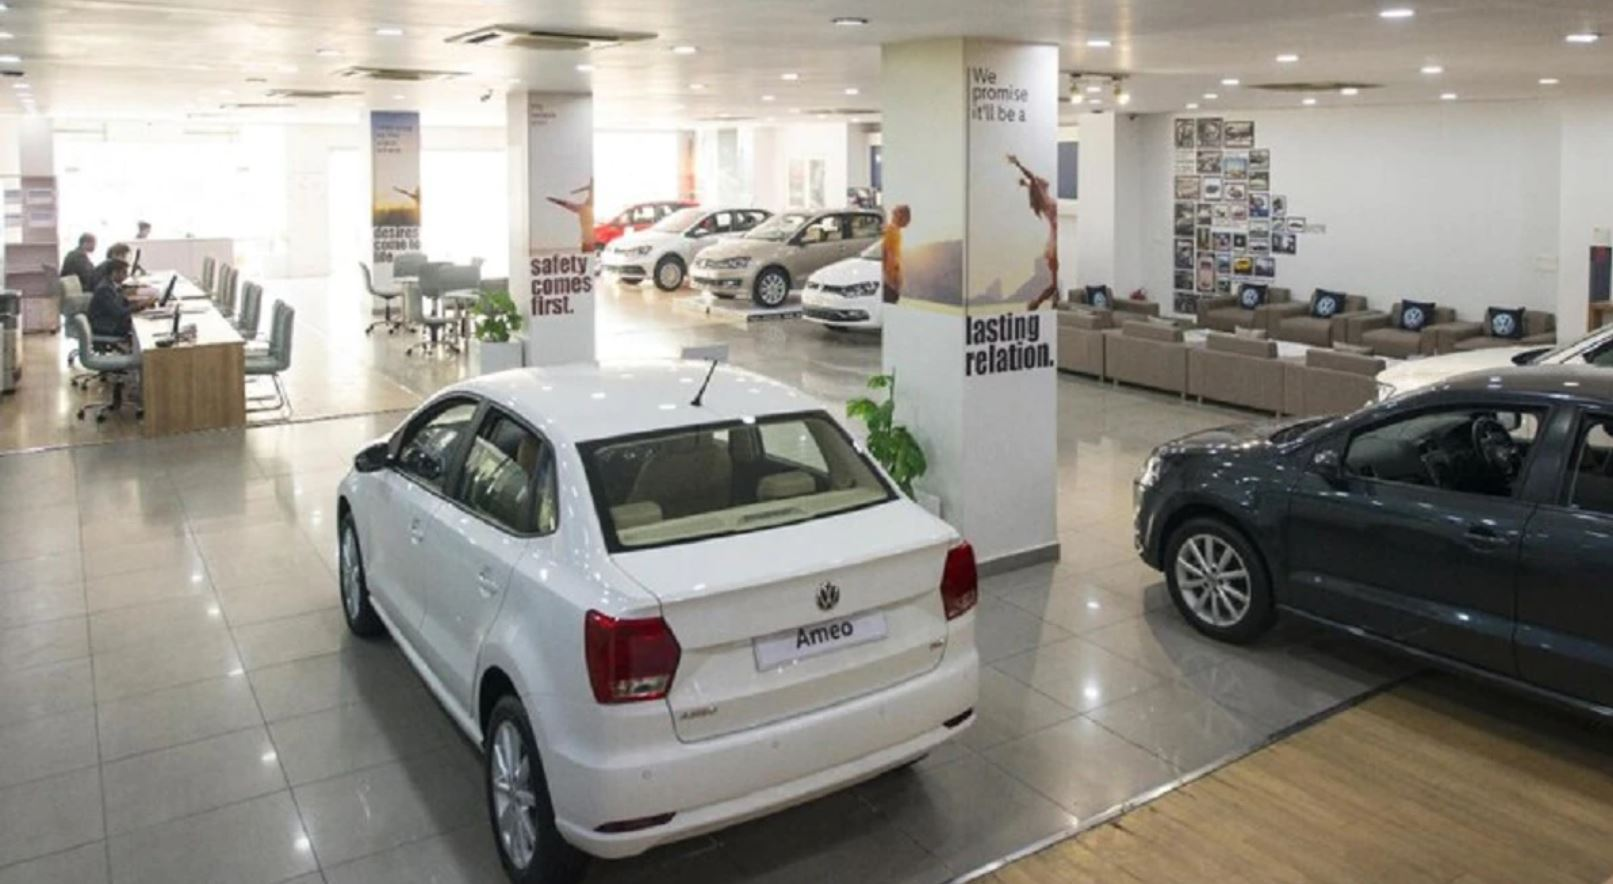 Passenger Vehicle Sales Decline 59 Percent In May Against April Due To corona